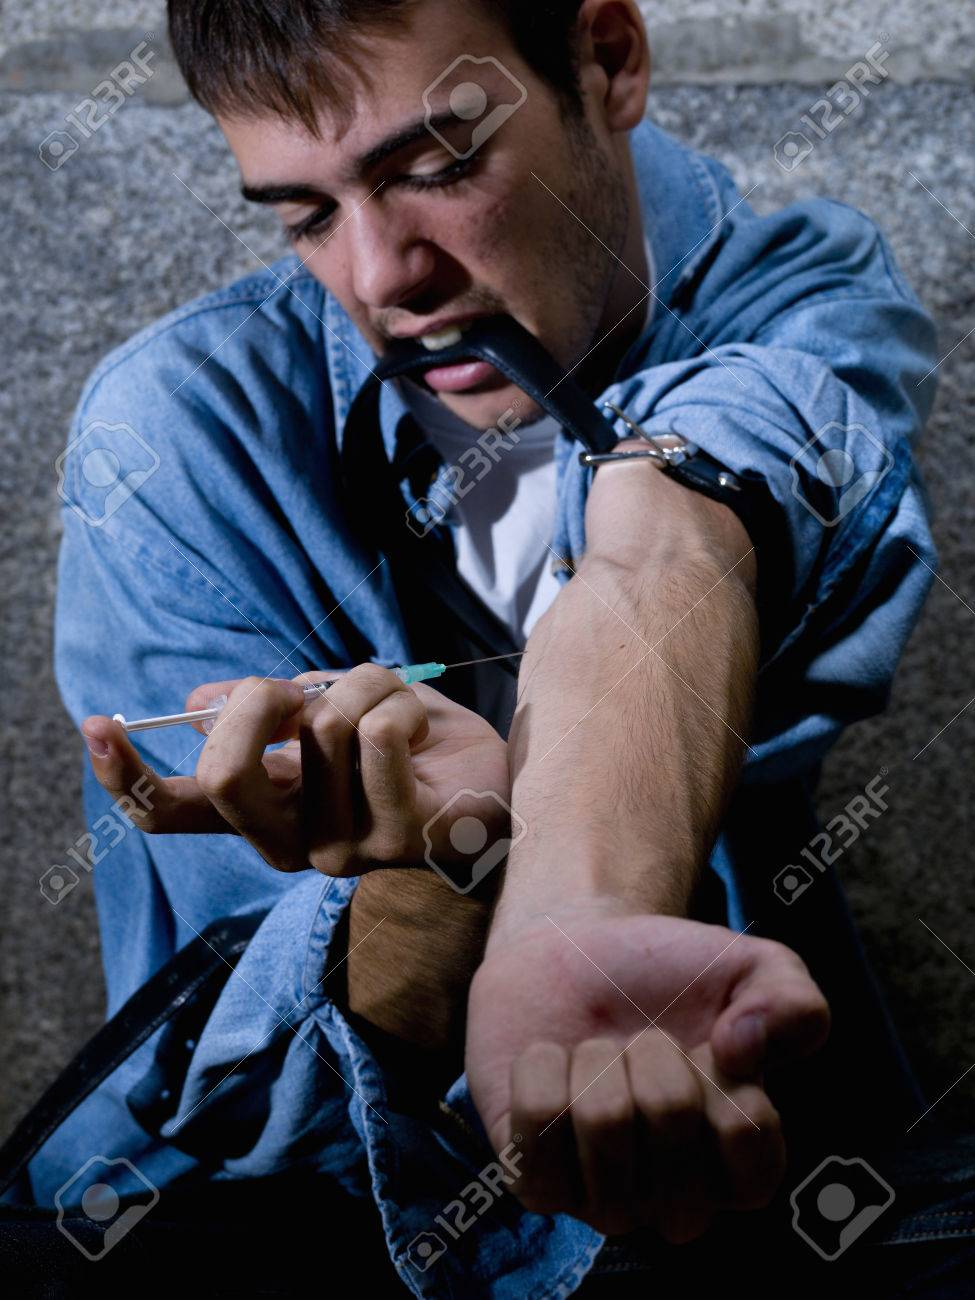 Young drug addict, drug being injected - 38156374